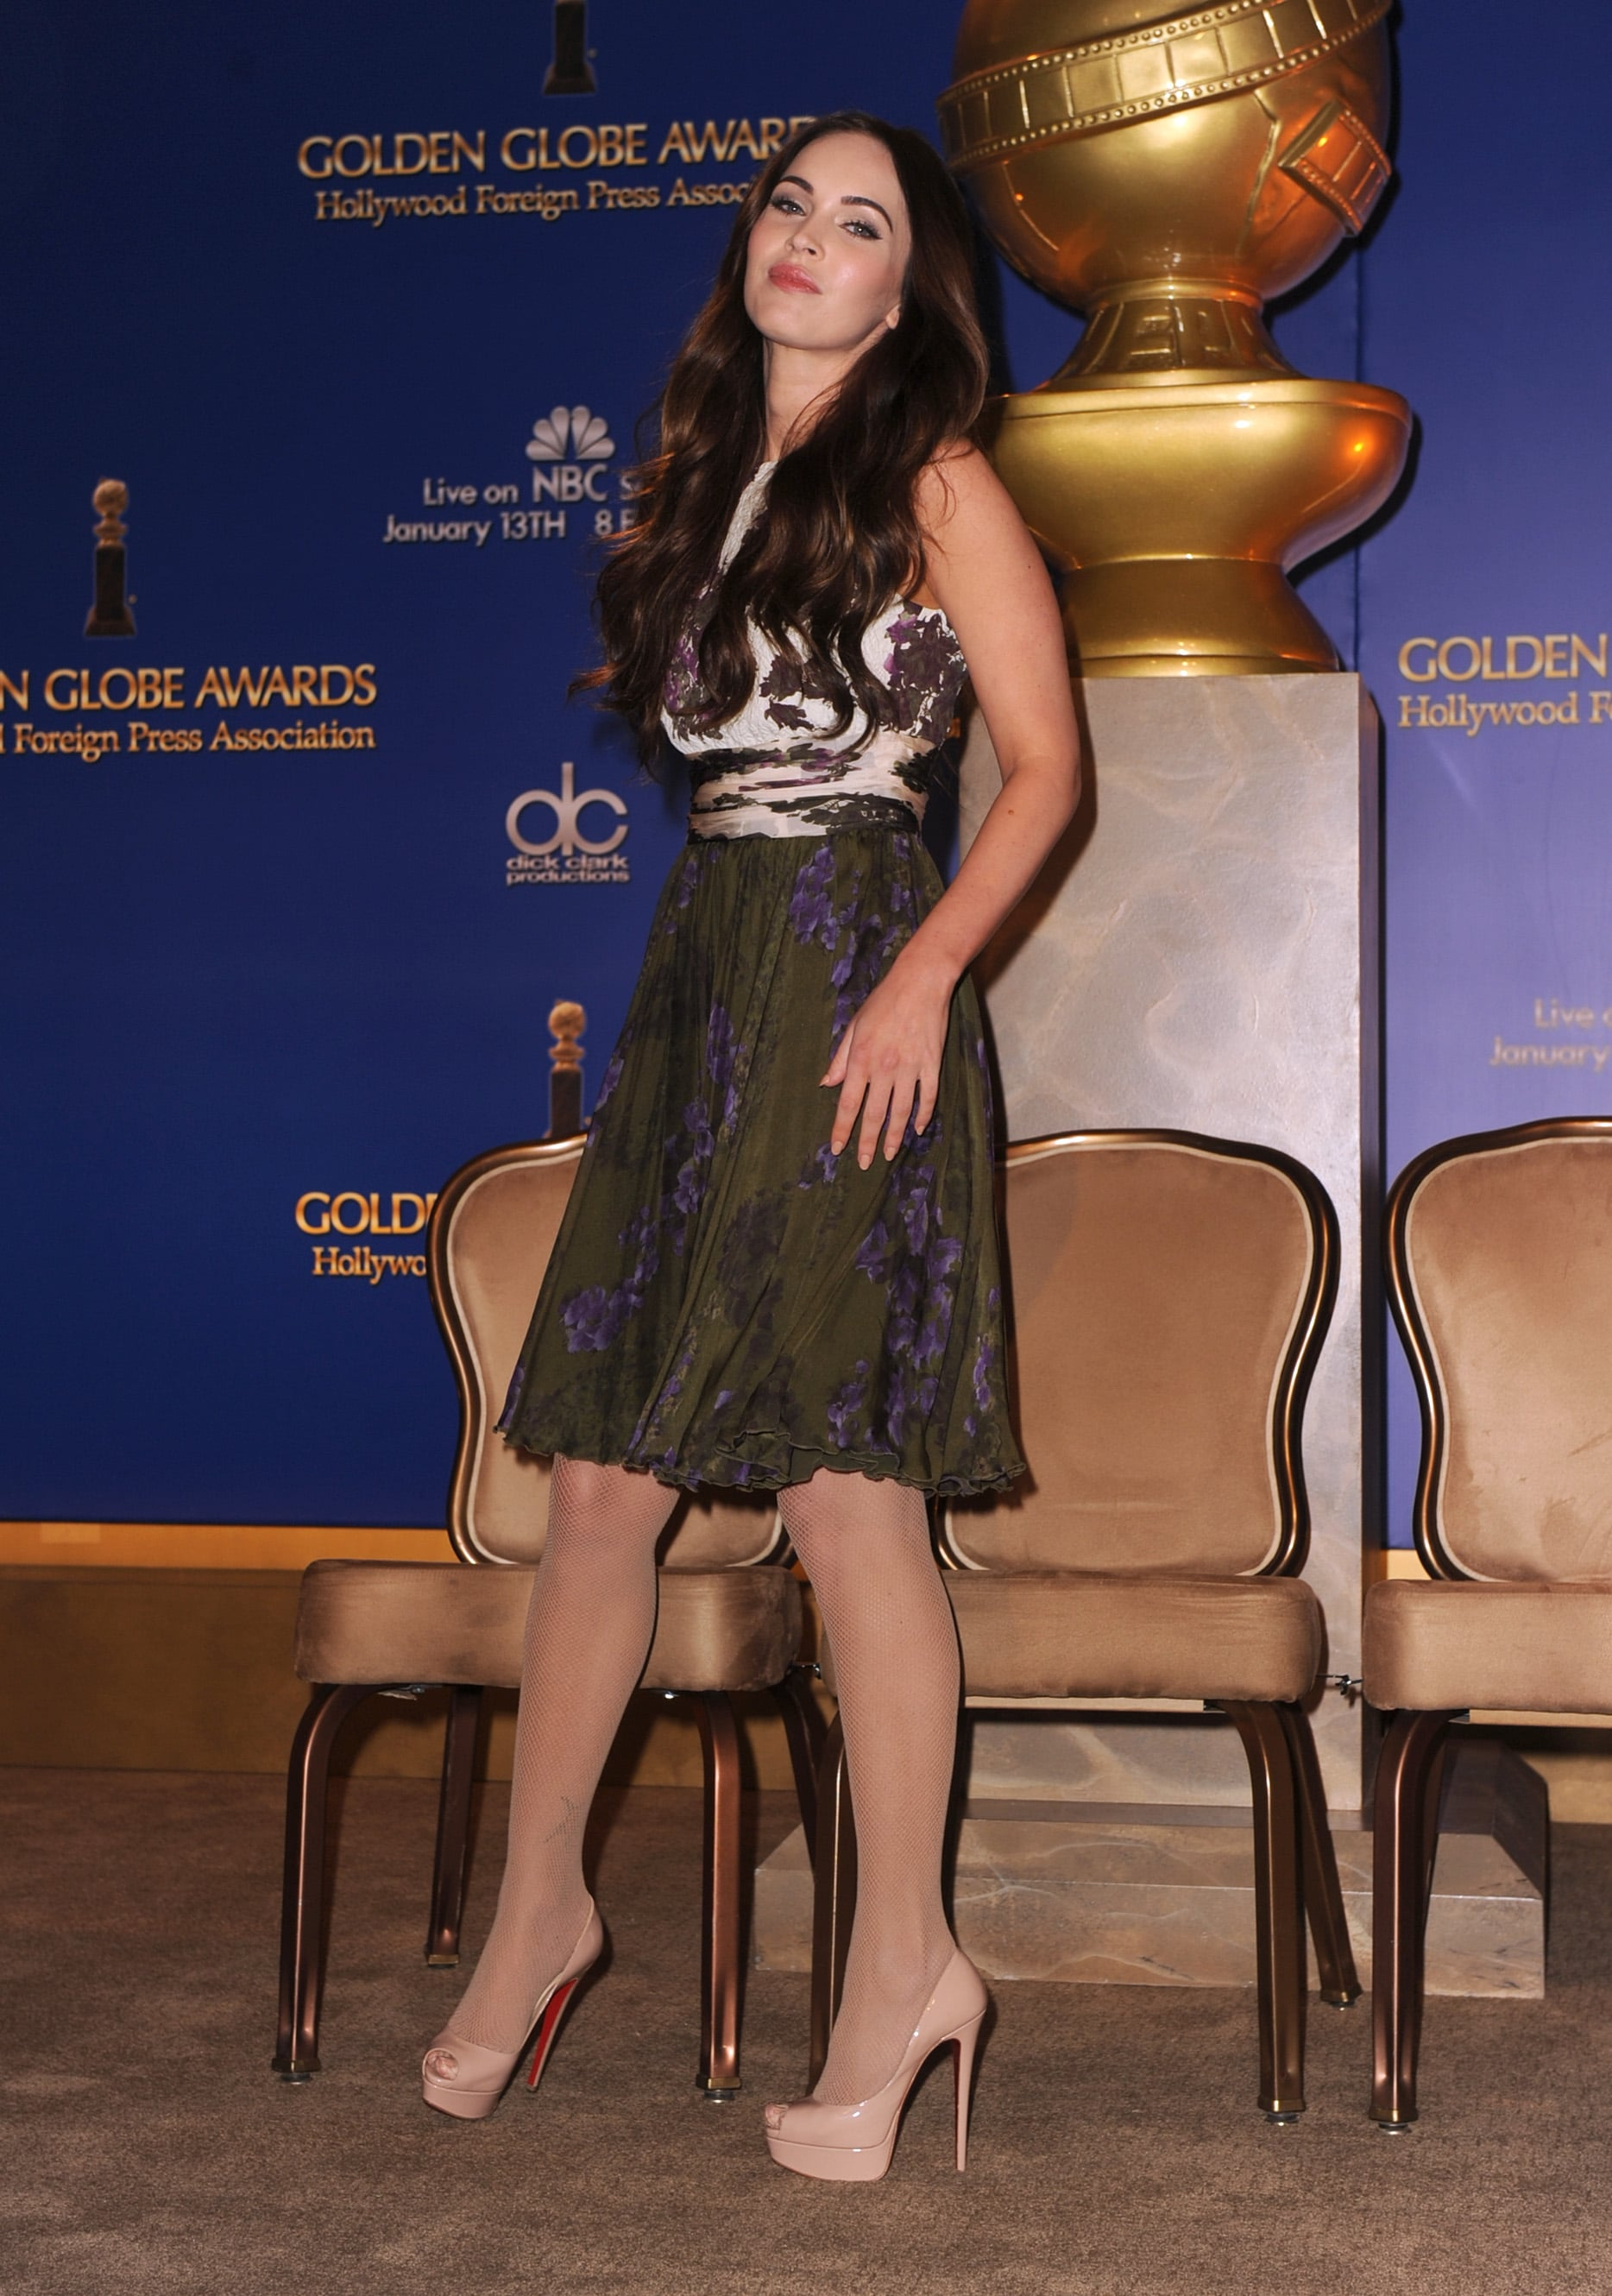 Megan Fox was on stage at the LA event.